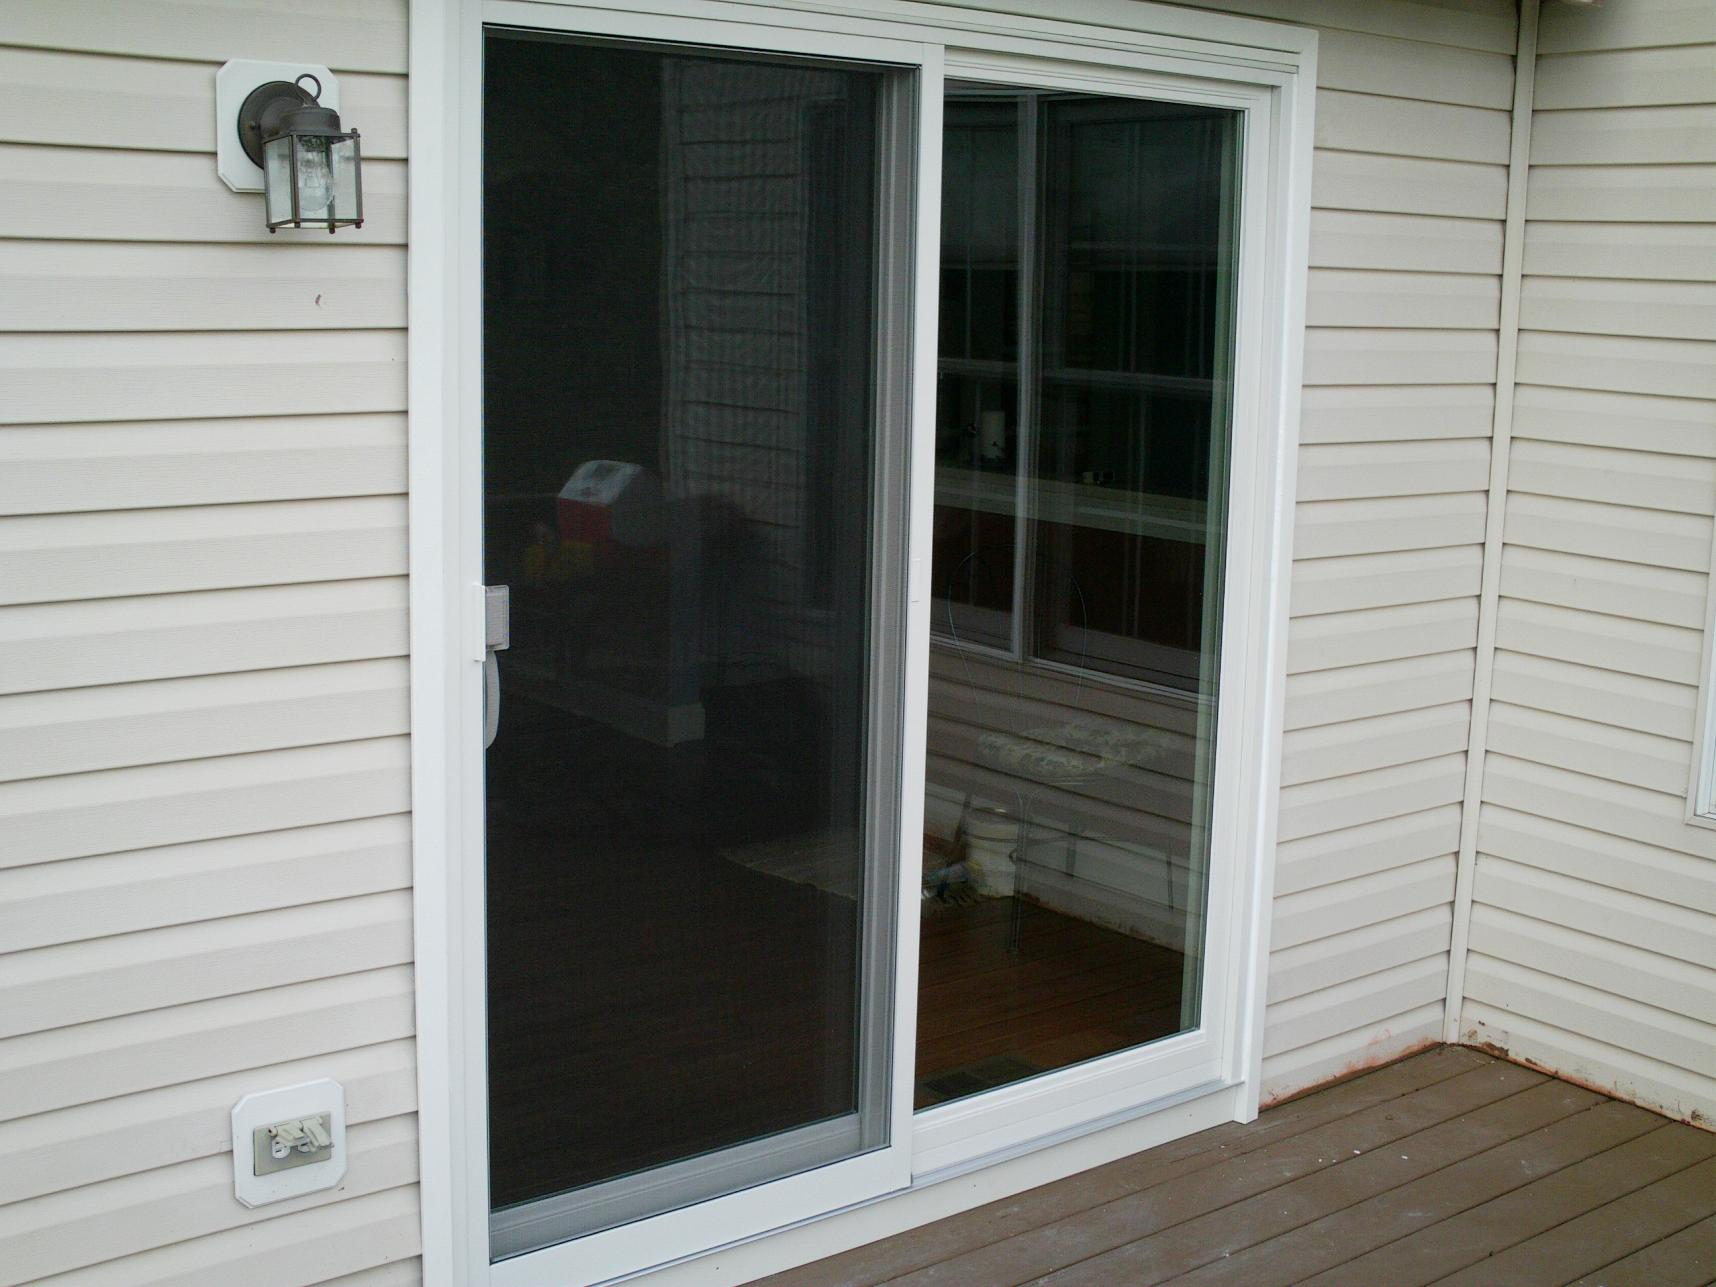 Anderson Patio Door-finished-andersen-permaglide-patio-door.jpg